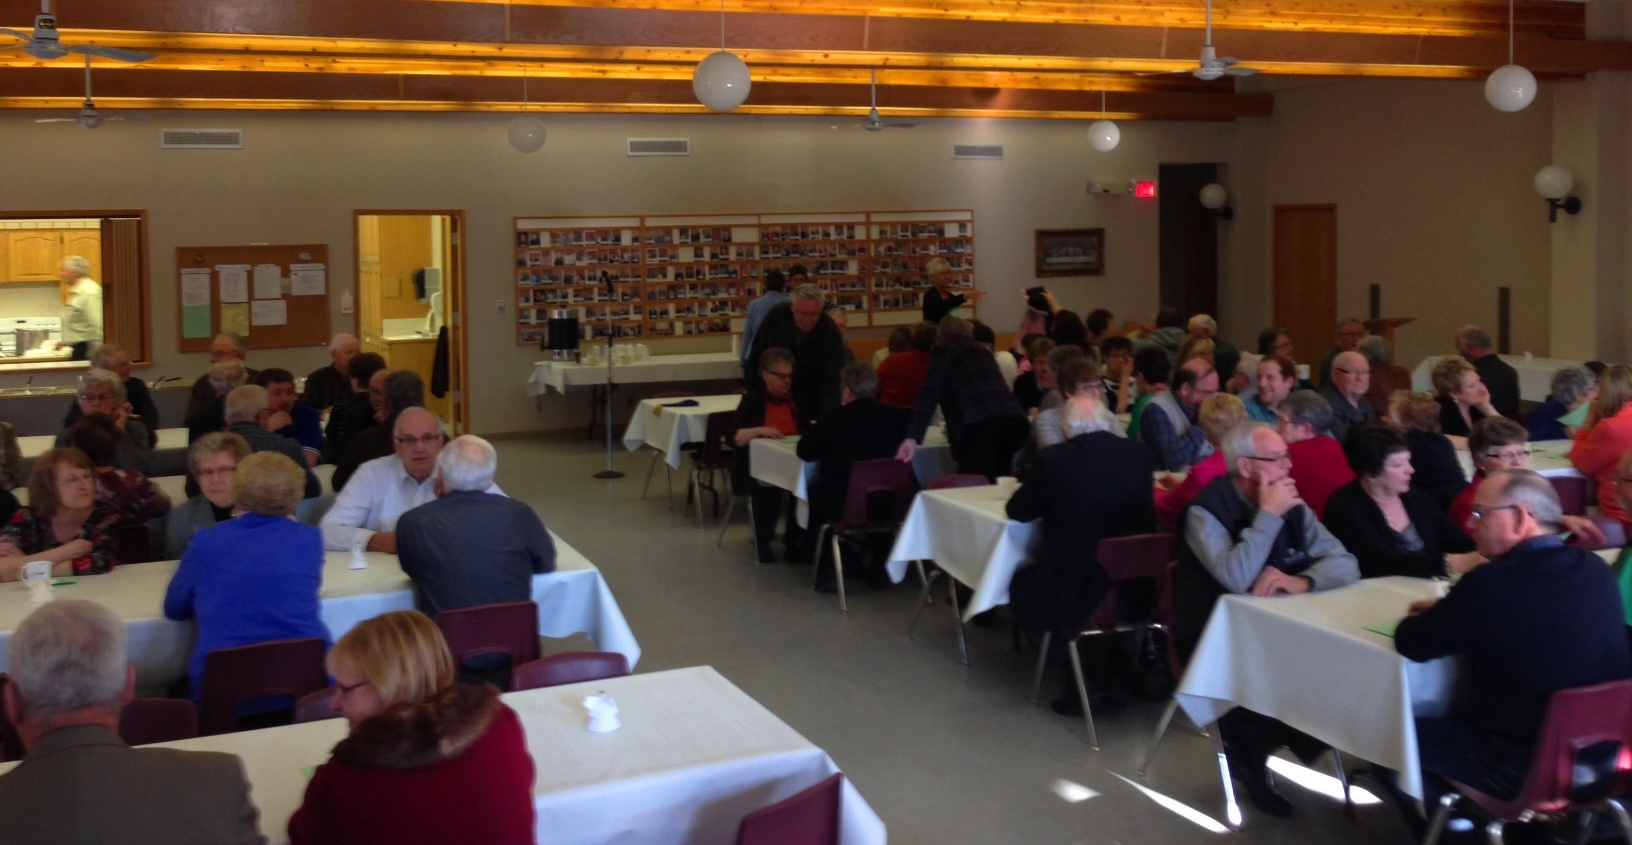 Richie Hall Speaks at Lutheran Laymen's League Fundraising Supper - Image 4